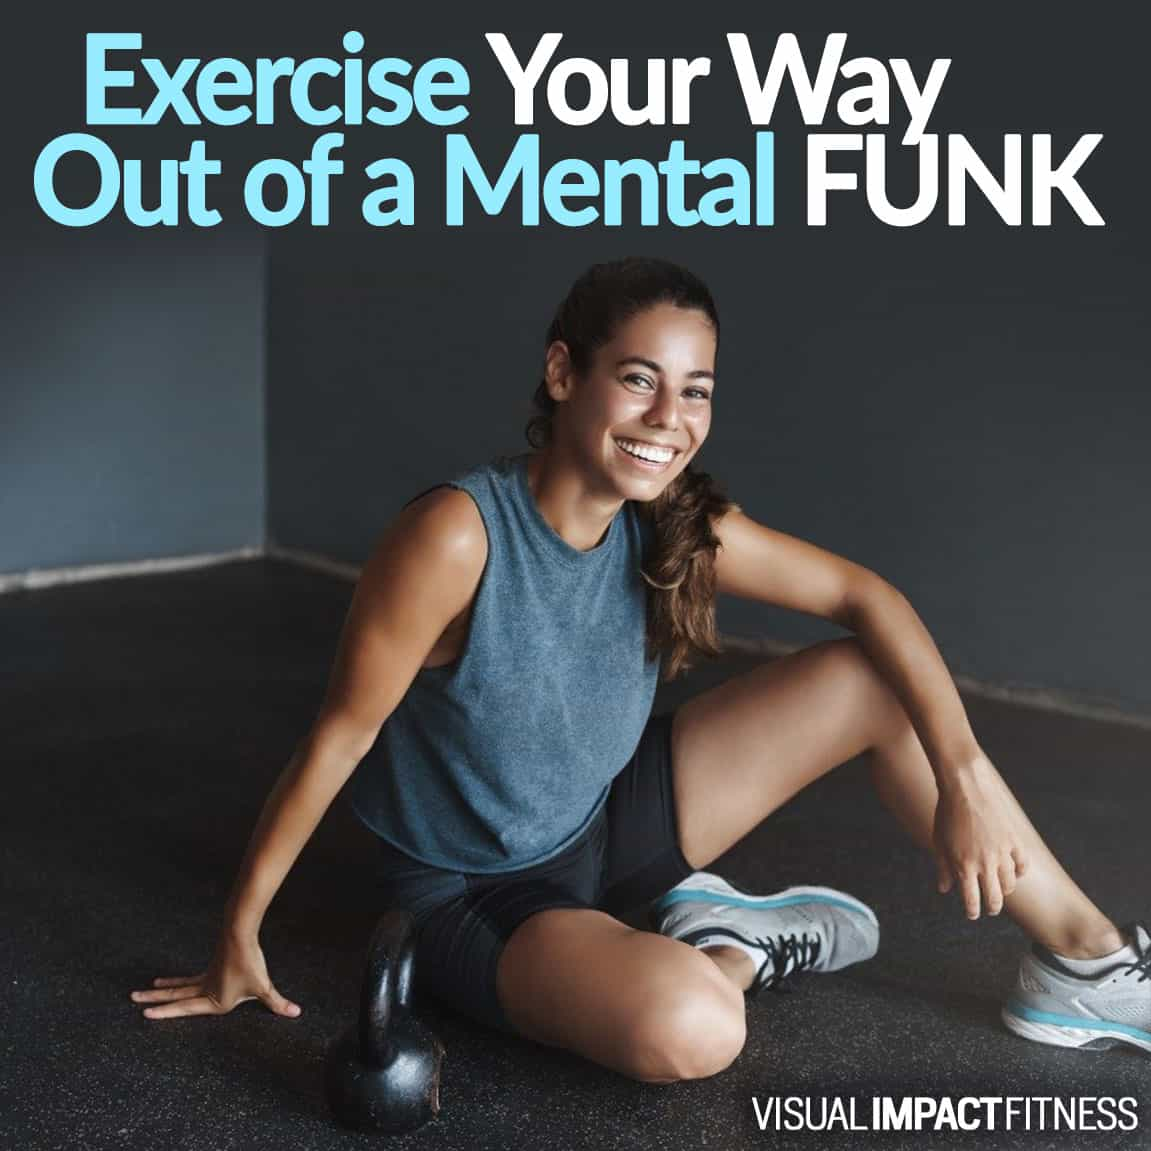 Exercise Your Way Out of a Mental FUNK